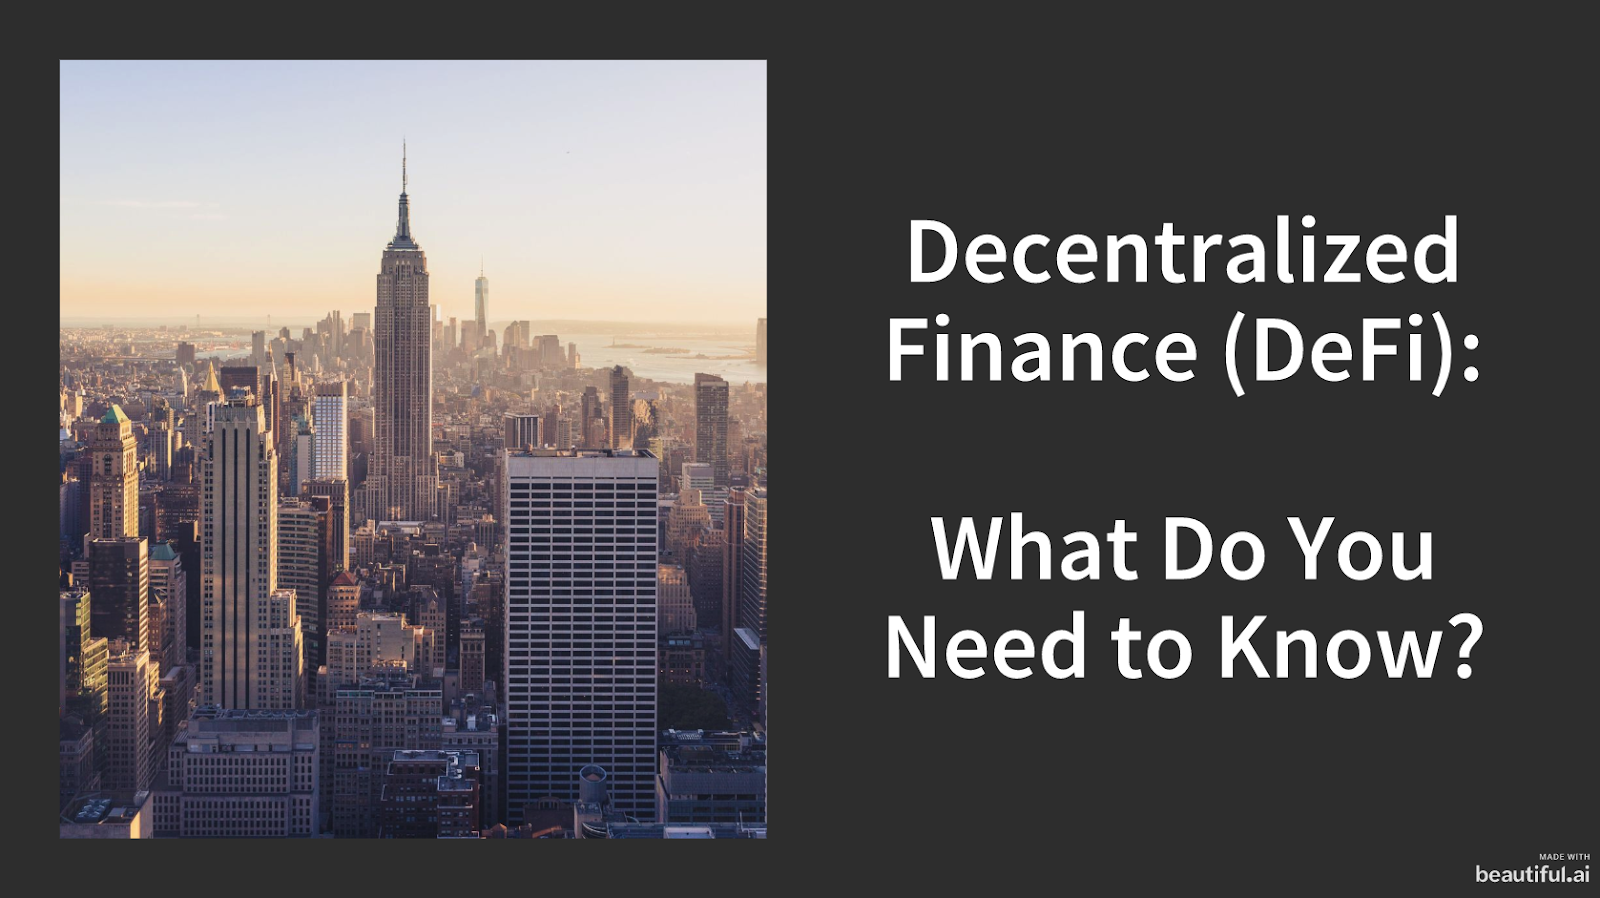 Decentralized Finance (DeFi): What Do You Need To Know?